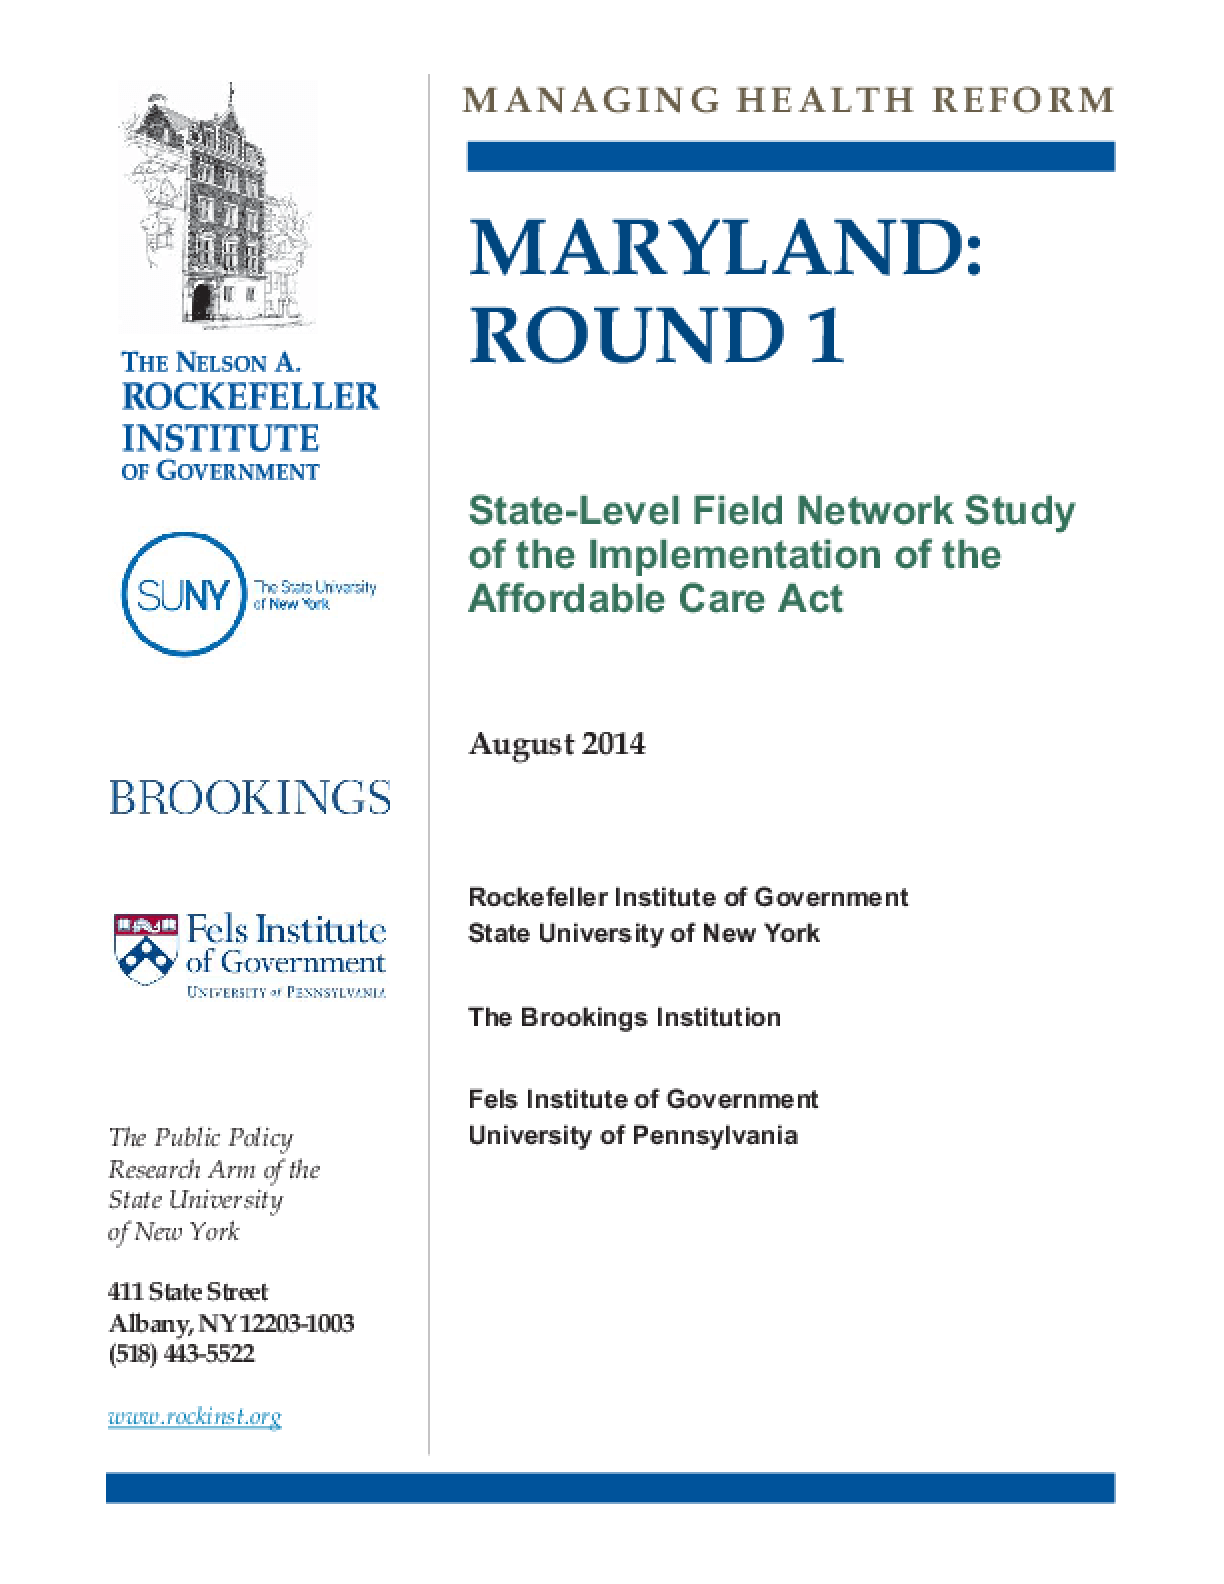 Maryland: Round 1 - State Level Field Network Study of the Implementation of the Affordable Care Act